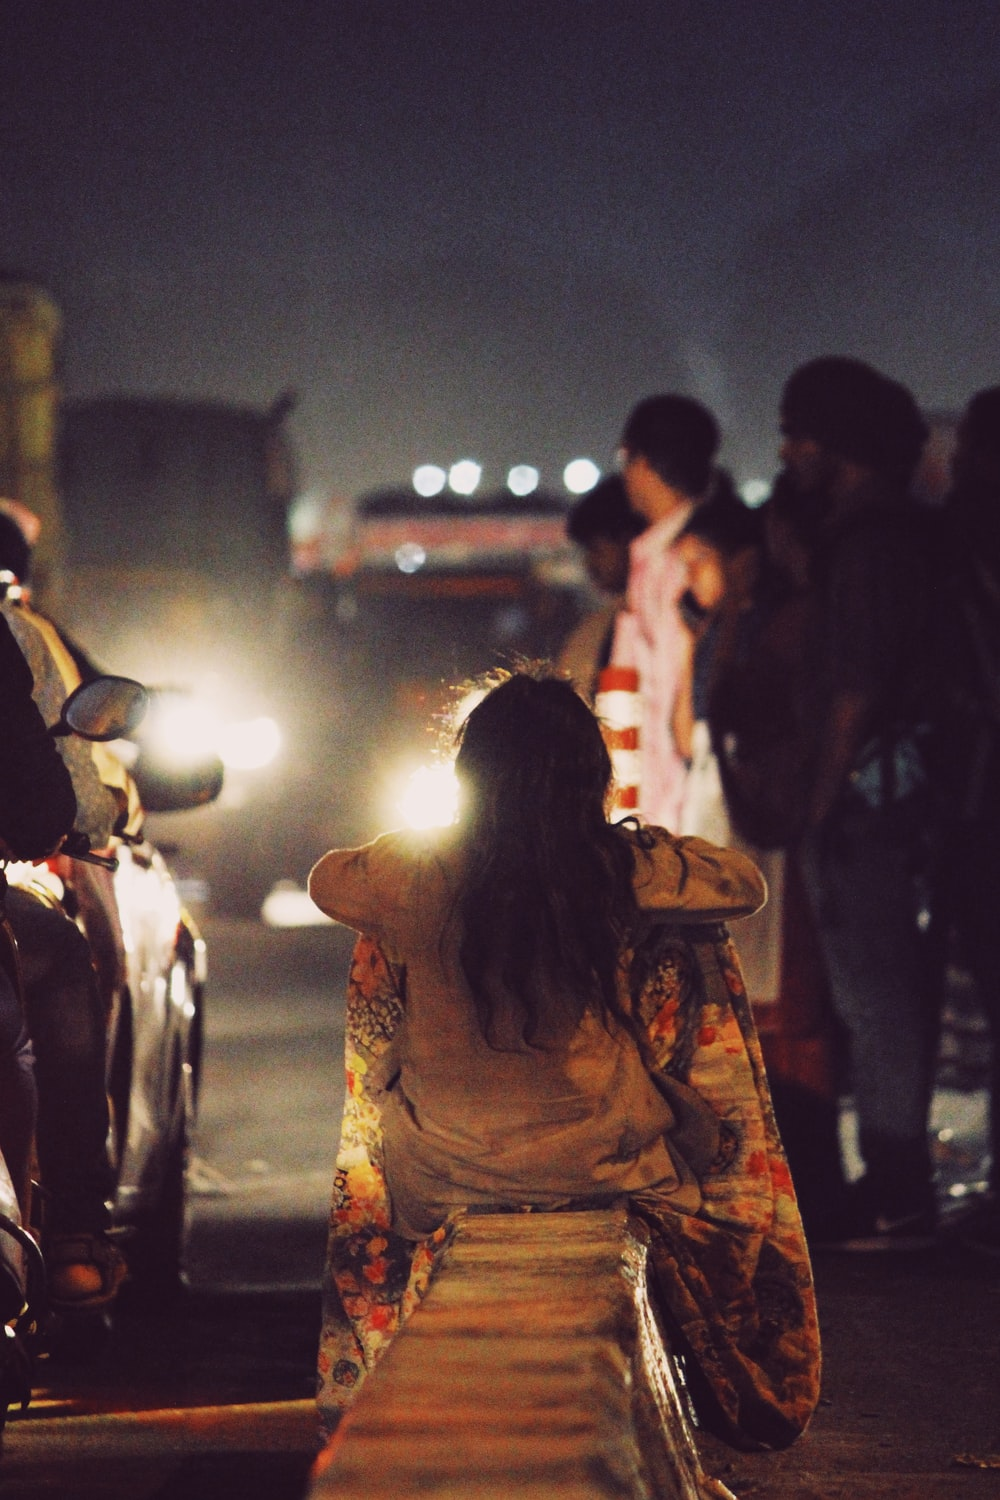 woman sitting on concrete barrier on street